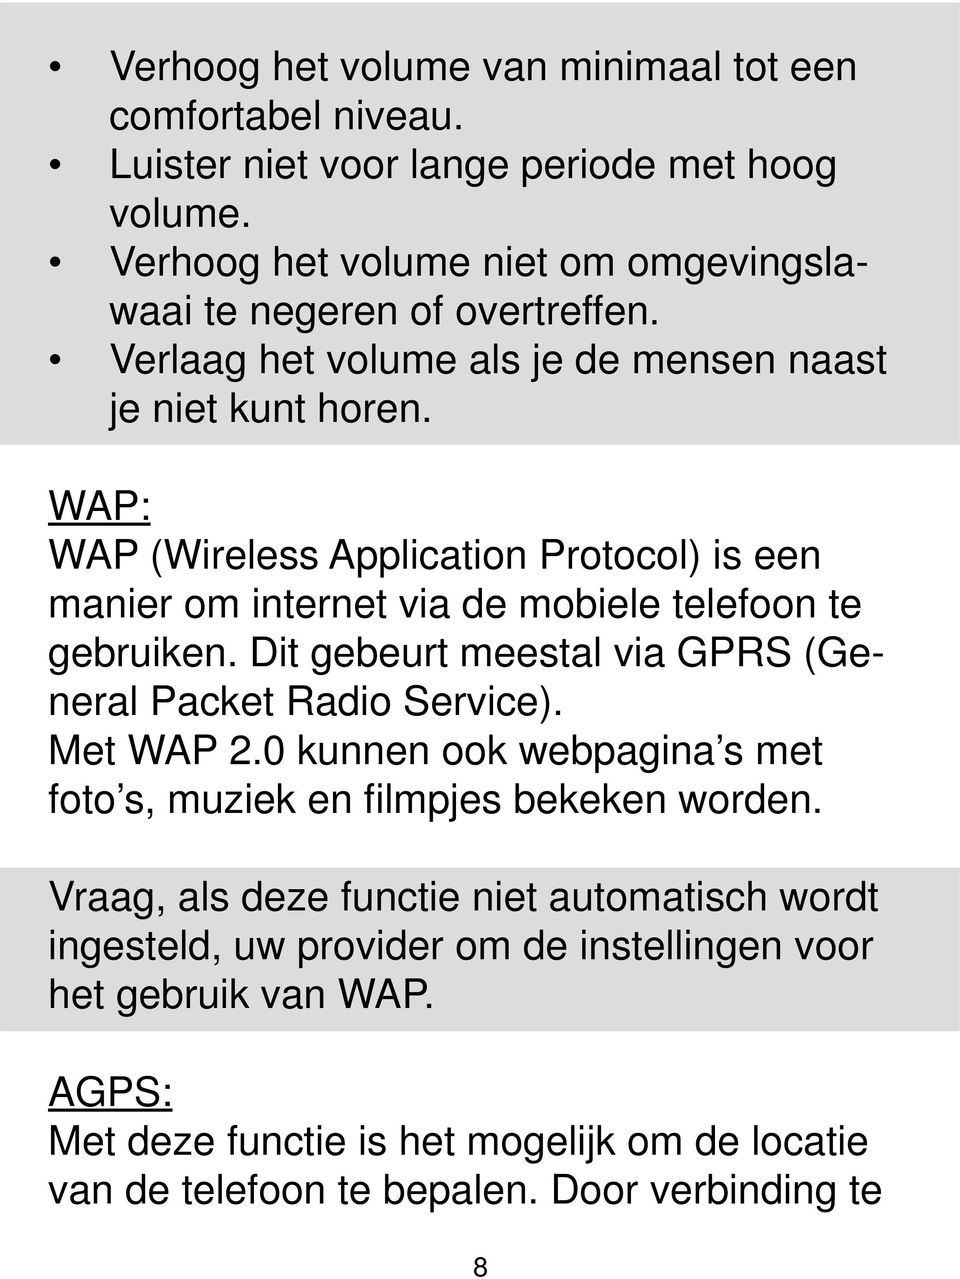 WAP: WAP (Wireless Application Protocol) is een manier om internet via de mobiele telefoon te gebruiken. Dit gebeurt meestal via GPRS (General Packet Radio Service). Met WAP 2.